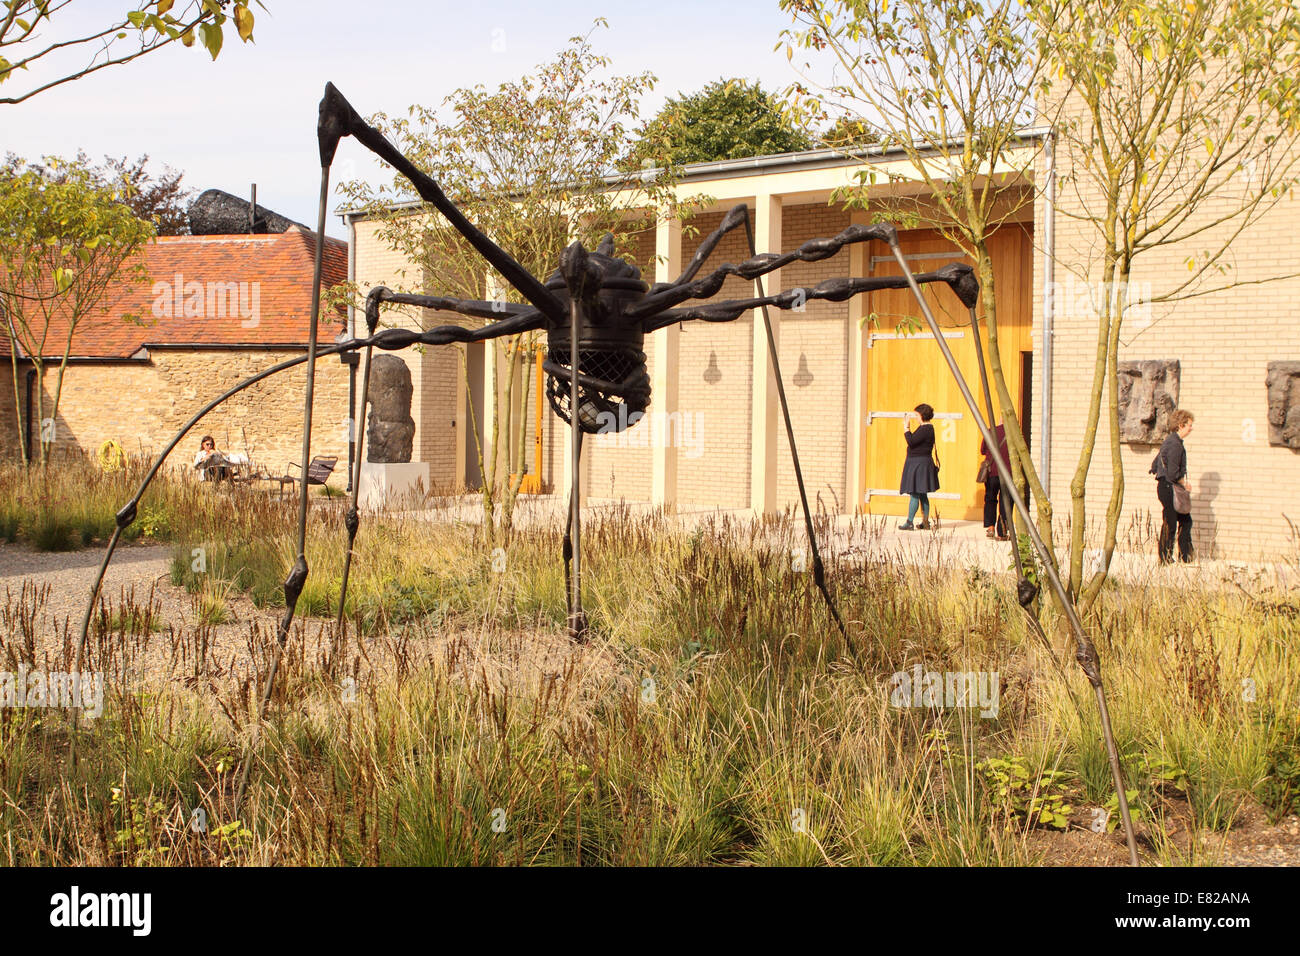 Bruton Somerset the new Hauser & Wirth art gallery includes Maman a